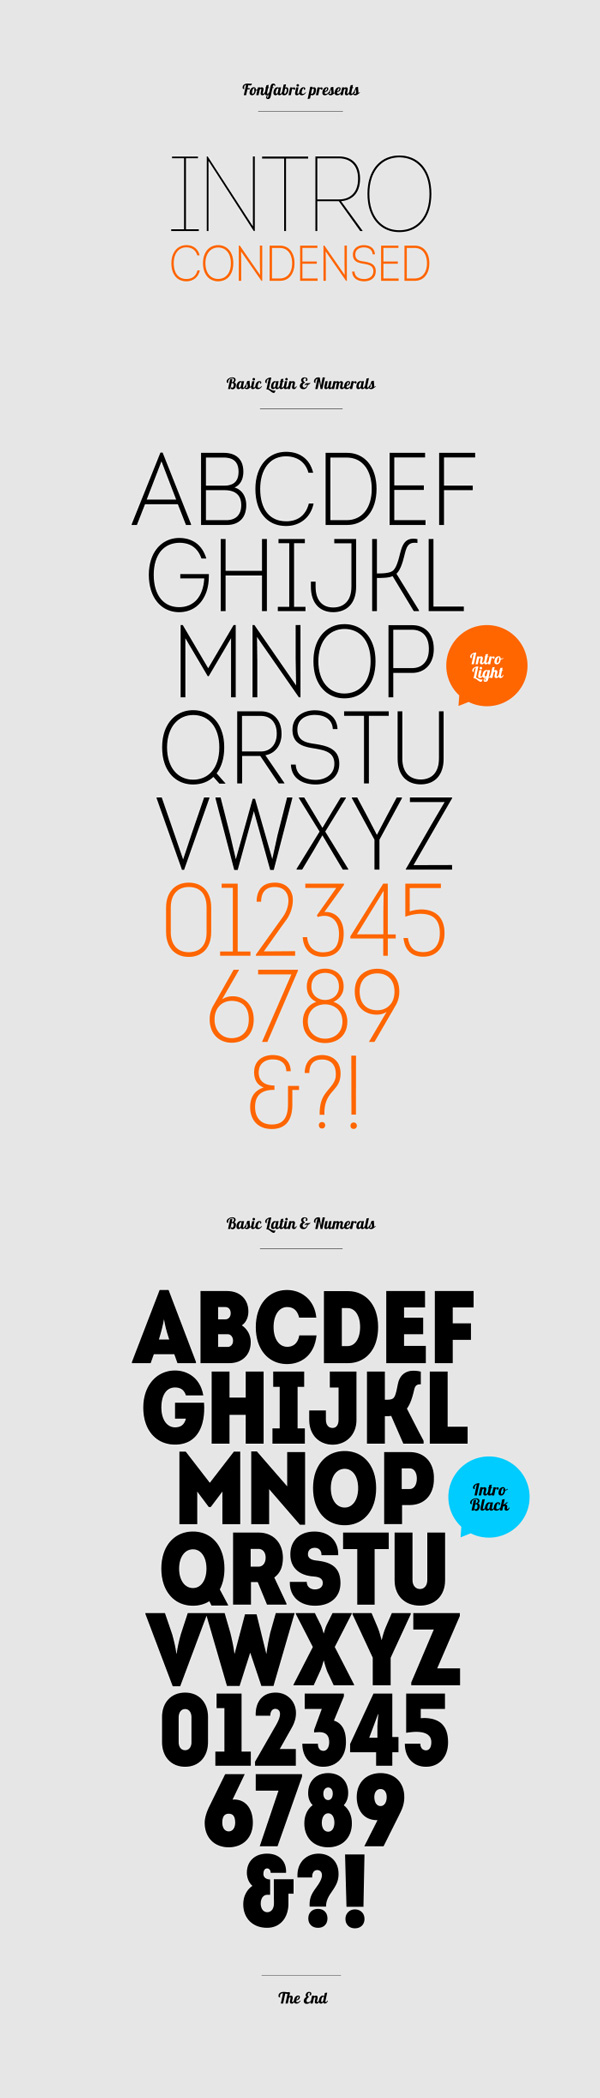 Free Font Of The Day Intro Condensed (Light & Black